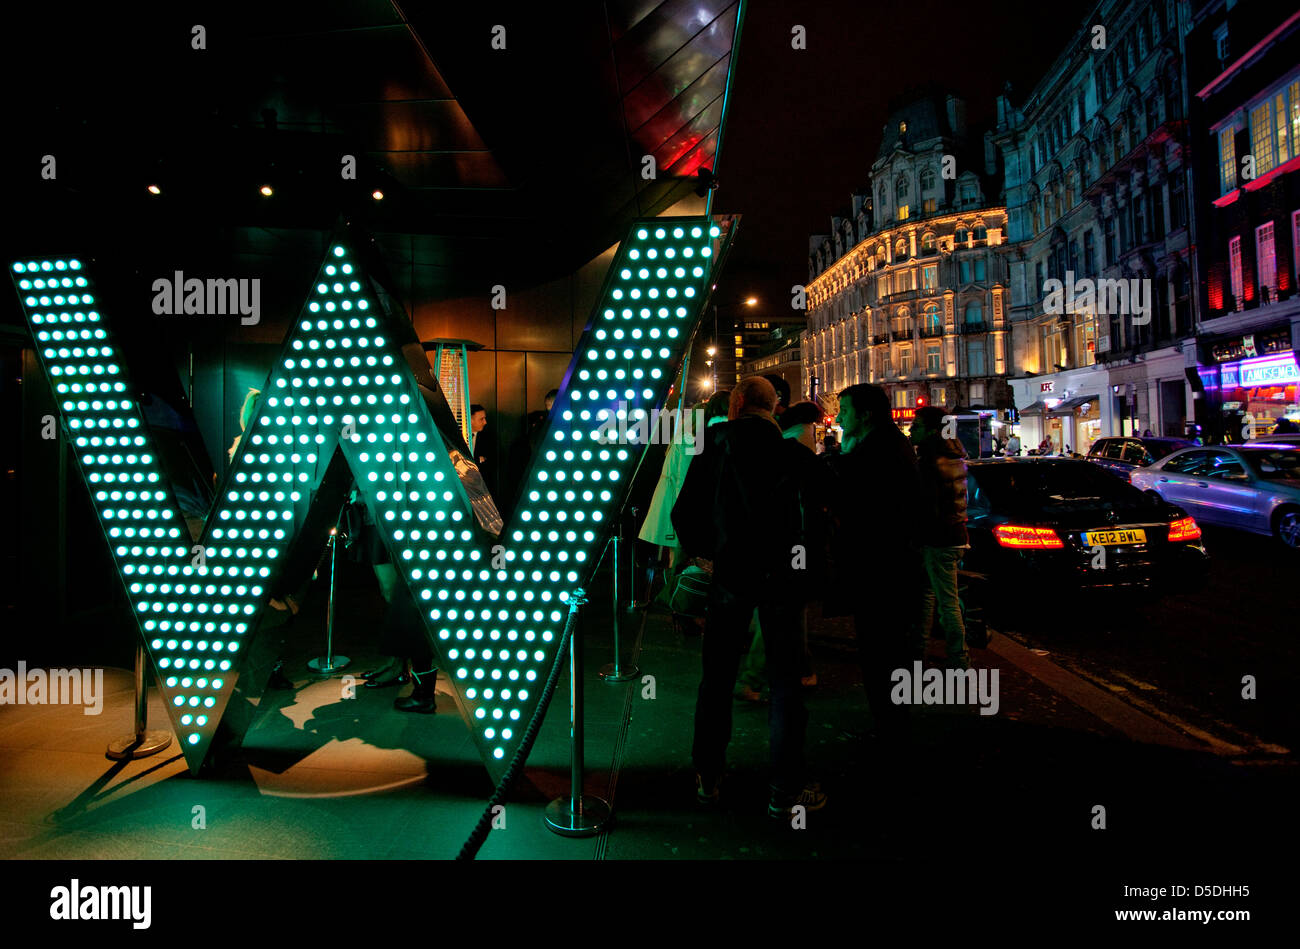 W Hotel, Leicester Square, London - Stock Image